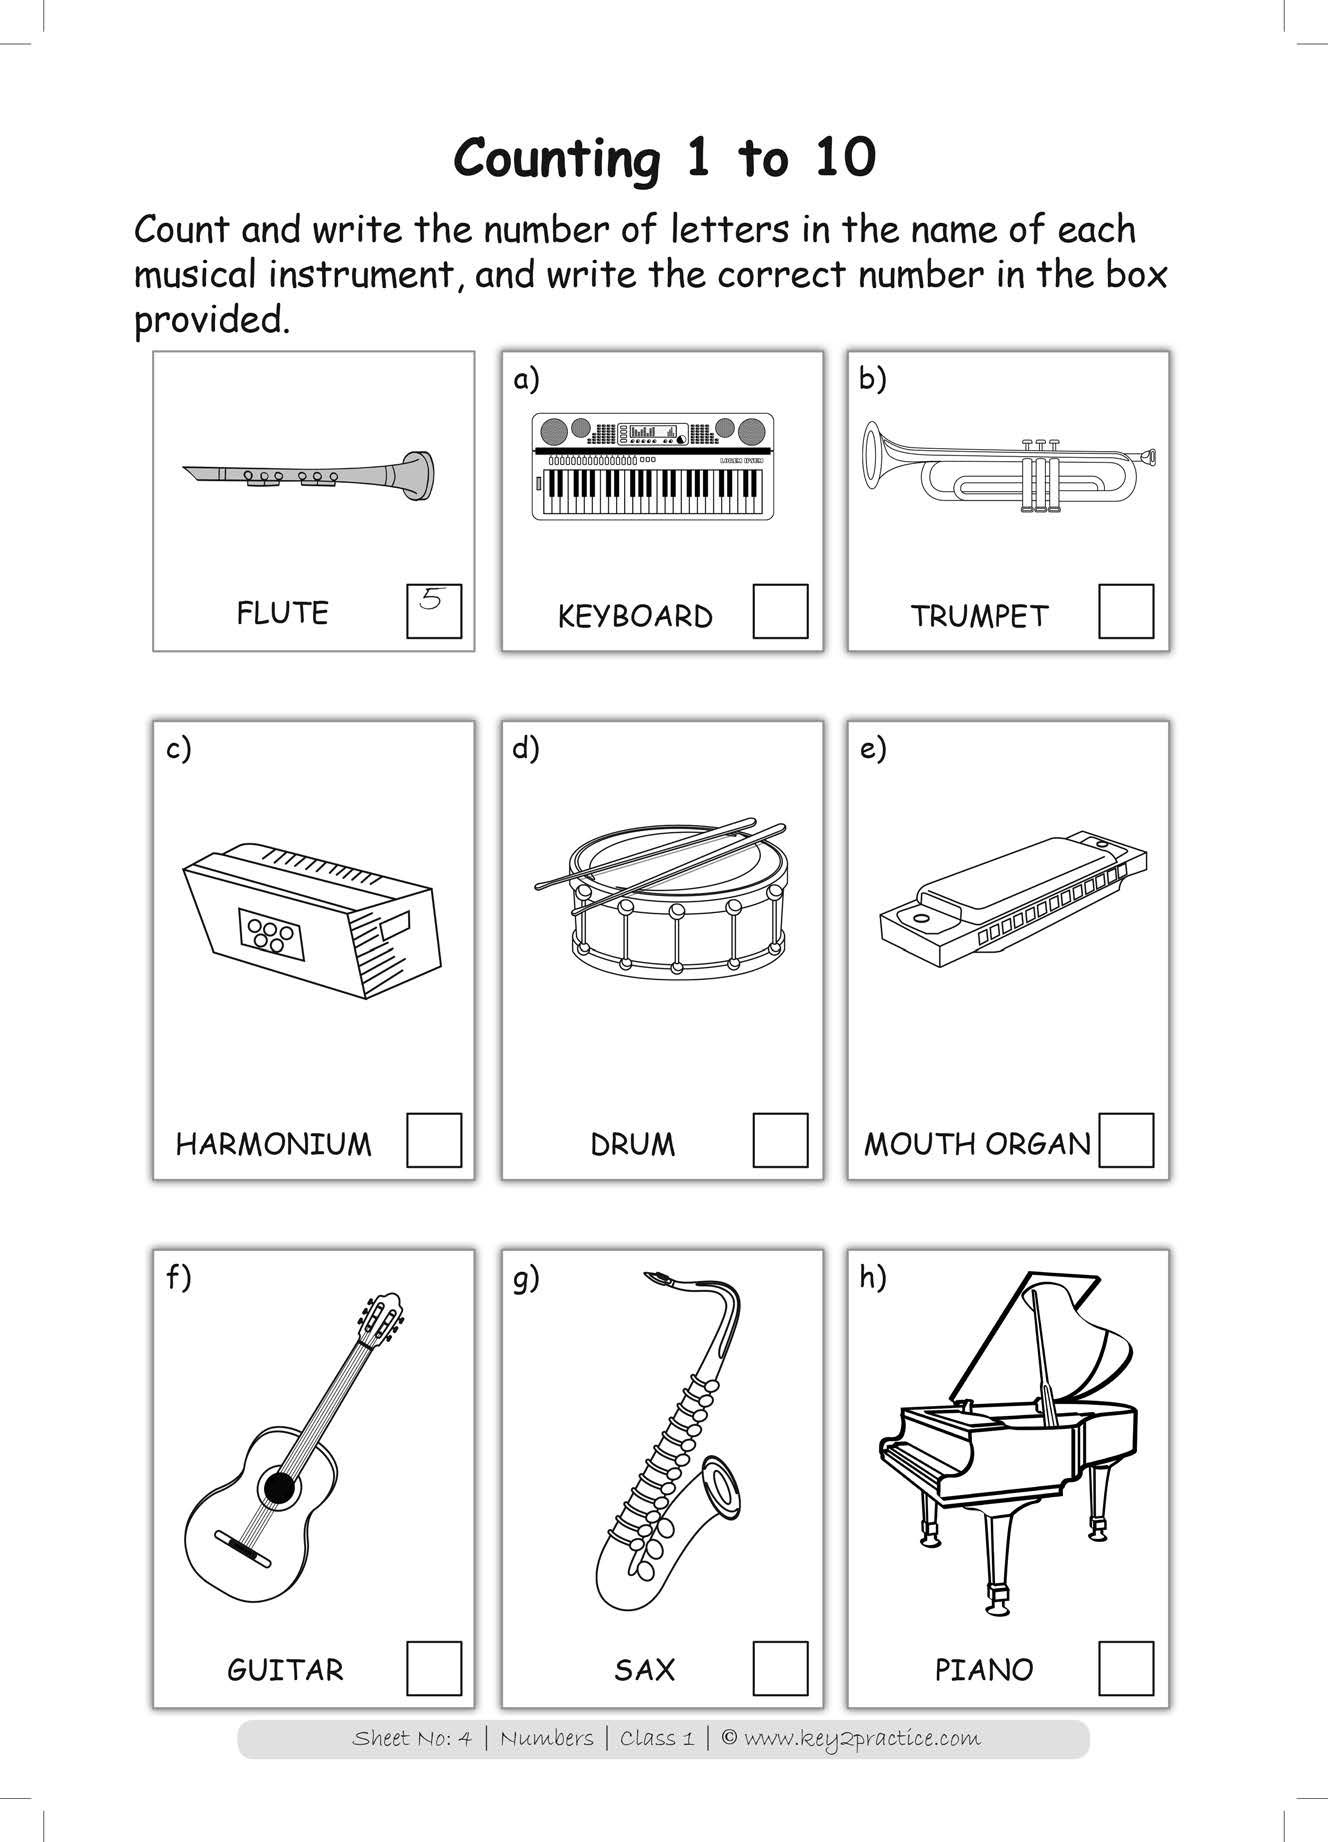 Class 1 Maths I Numbers 110 worksheets key2practice